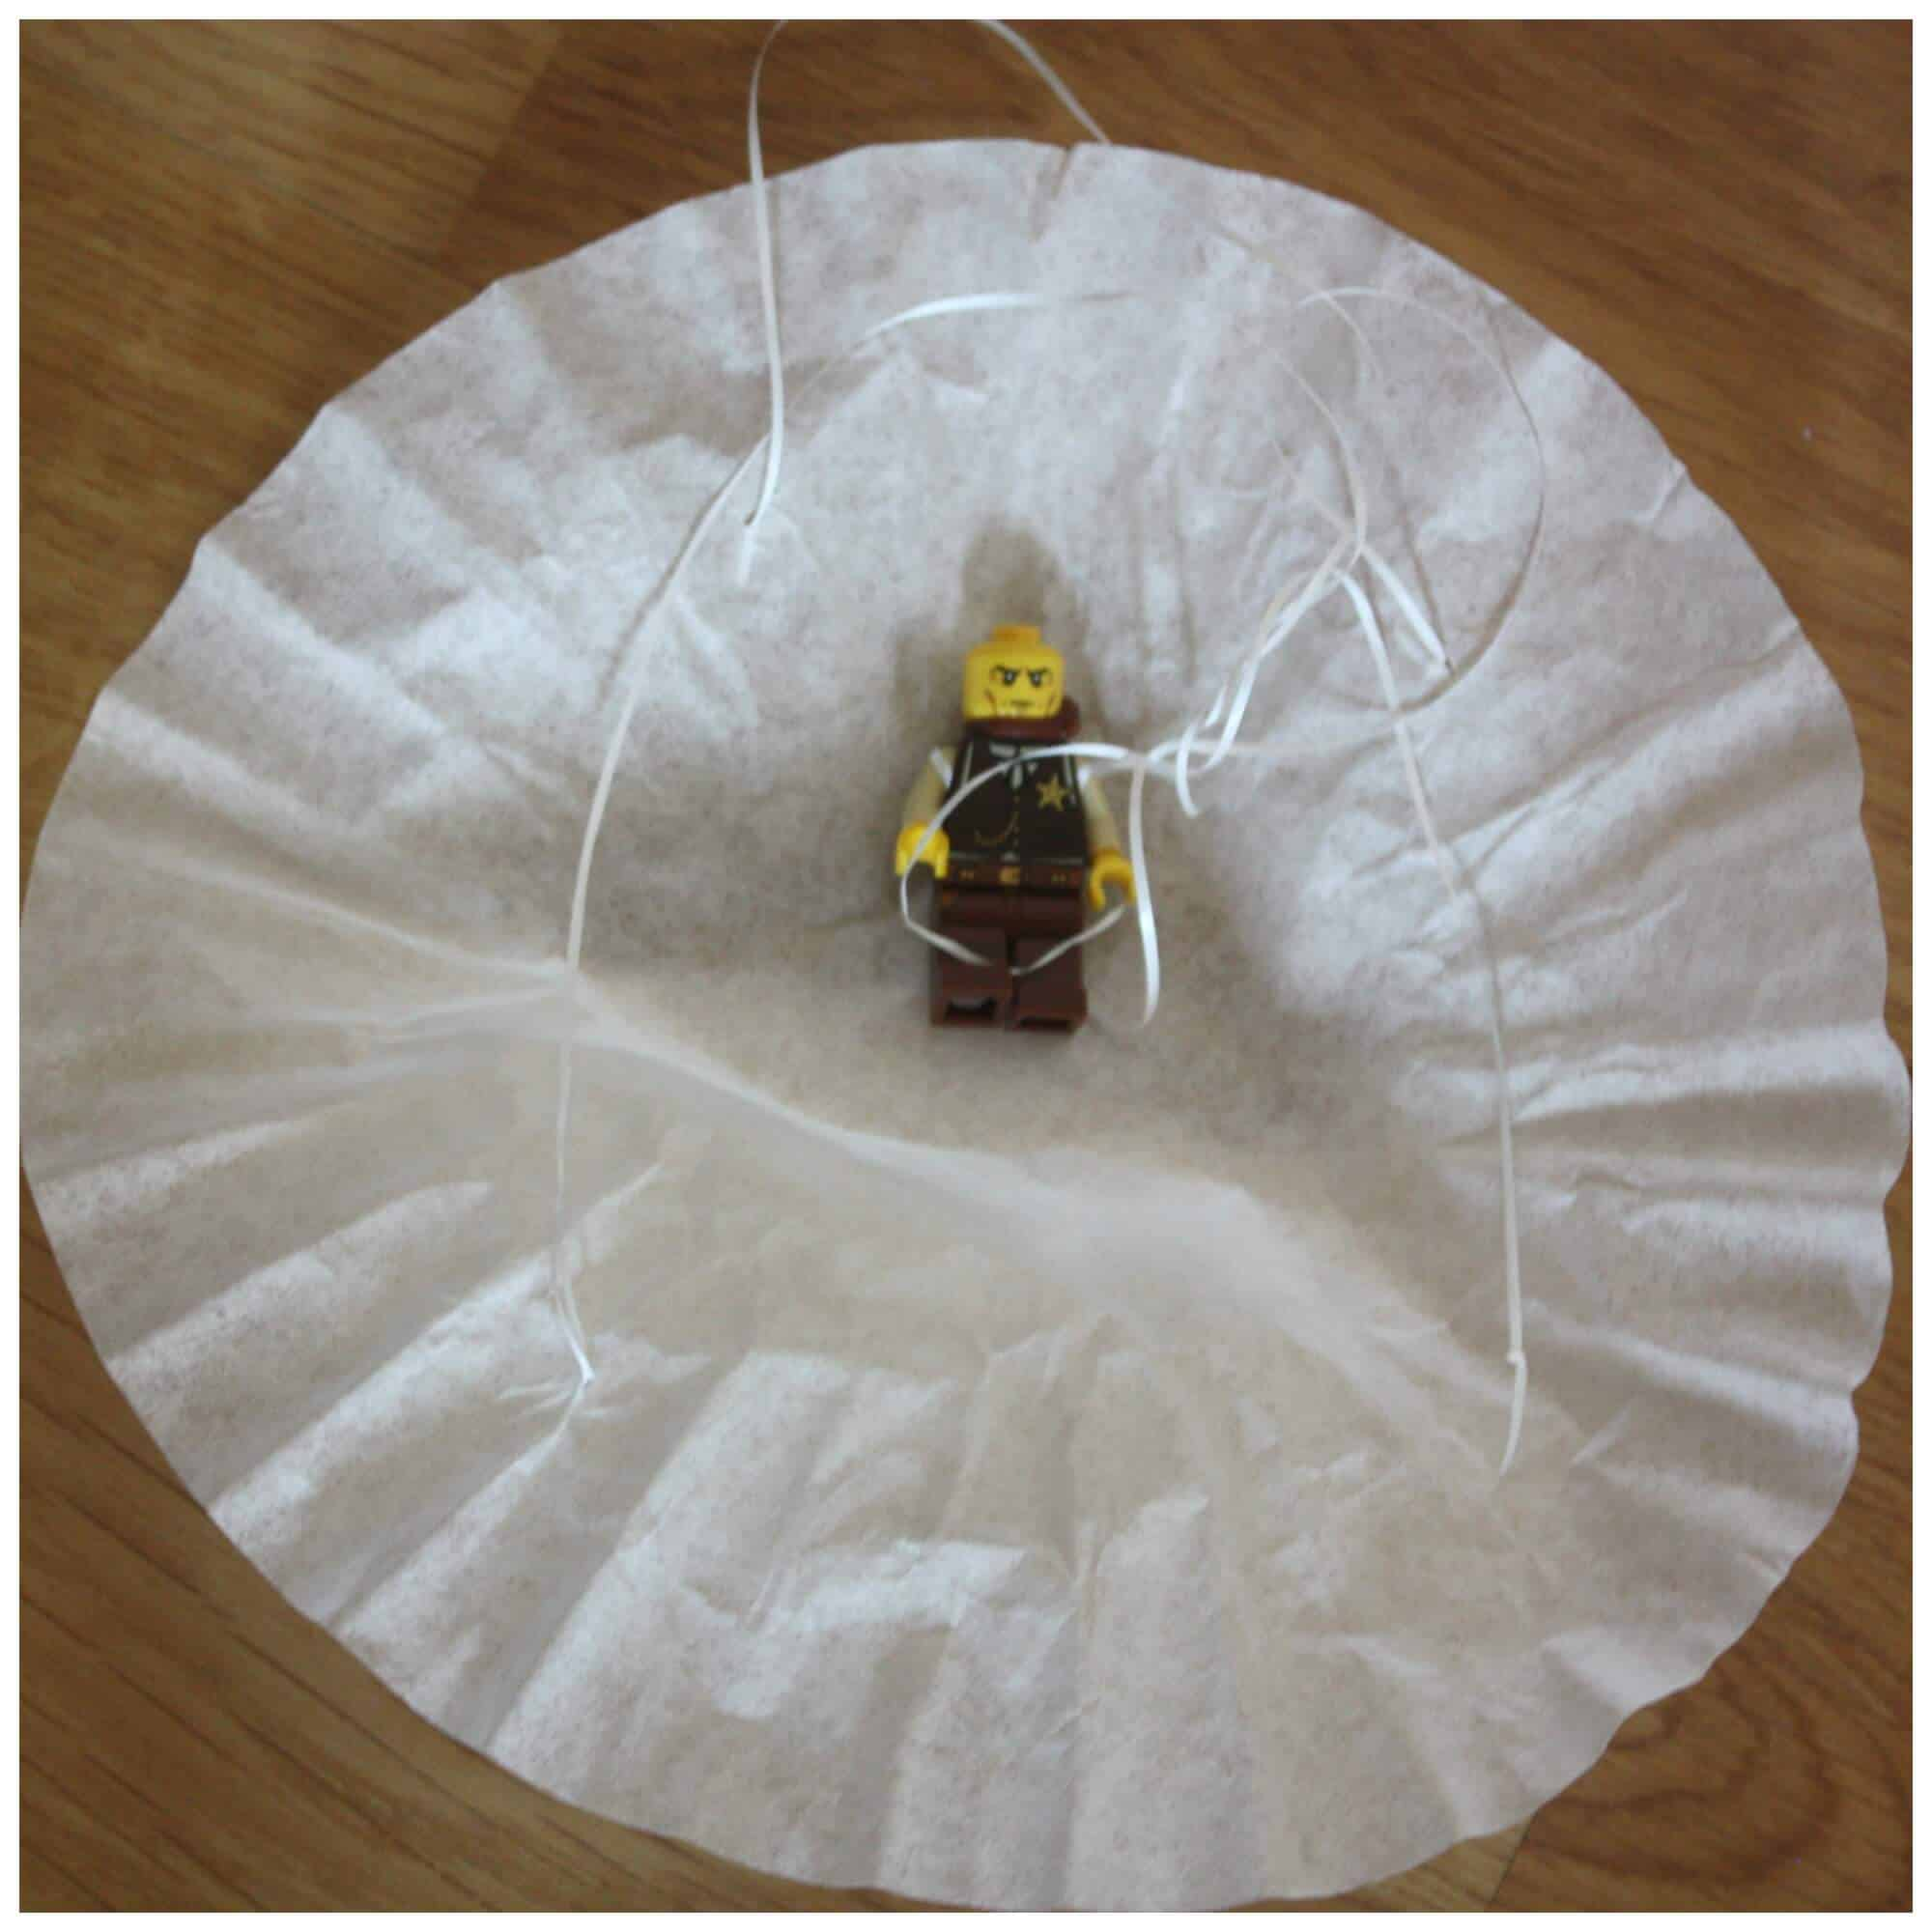 Coffee Filter Parachute Lego Minifigure Parachute Activity